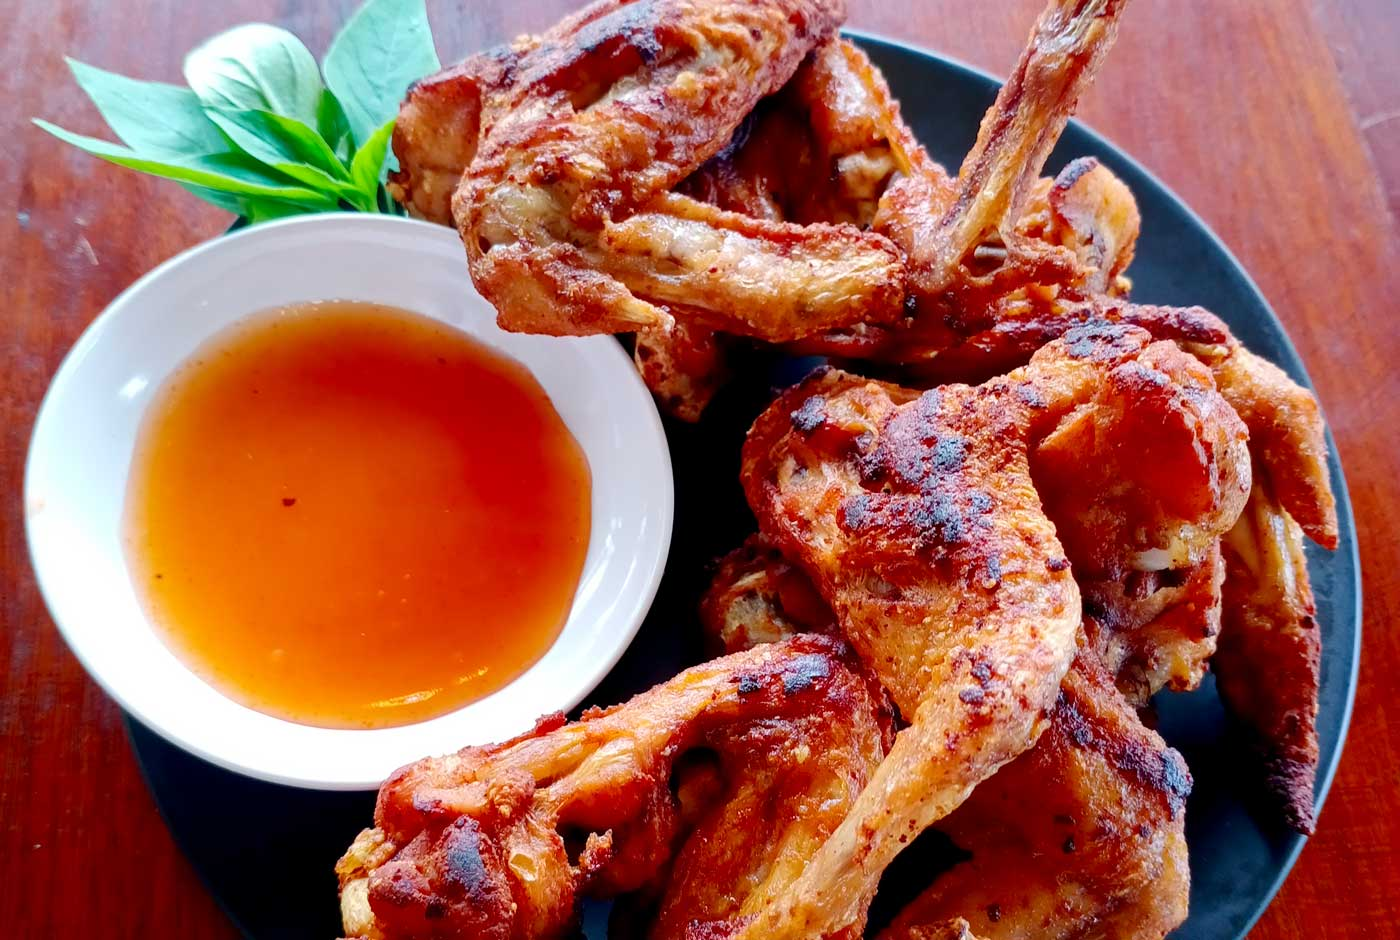 Fried chicken wings in fish sauce